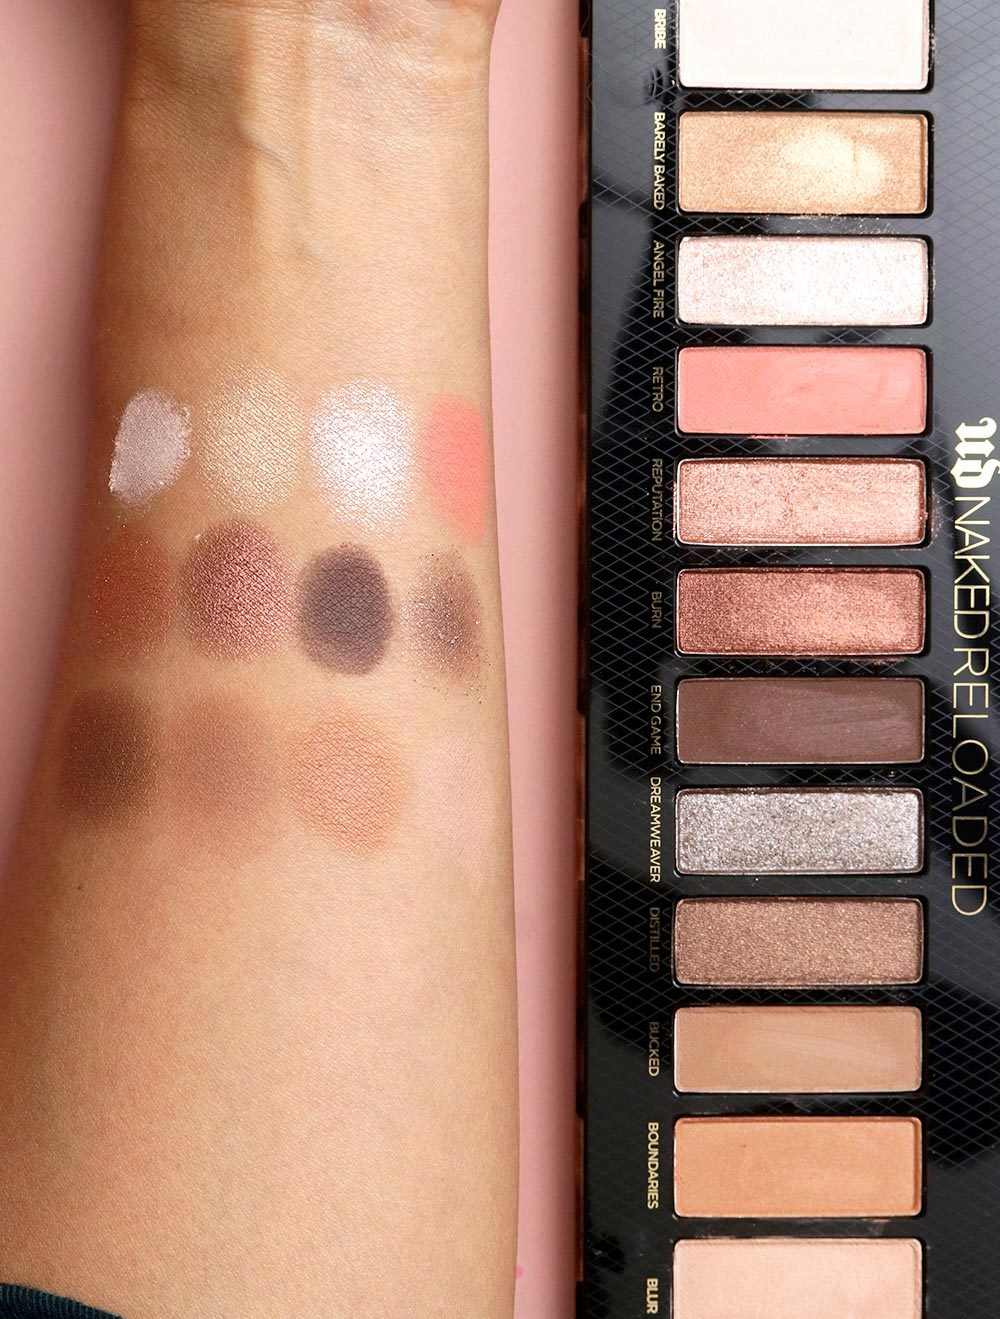 urban decay naked reloaded swatches tan skin